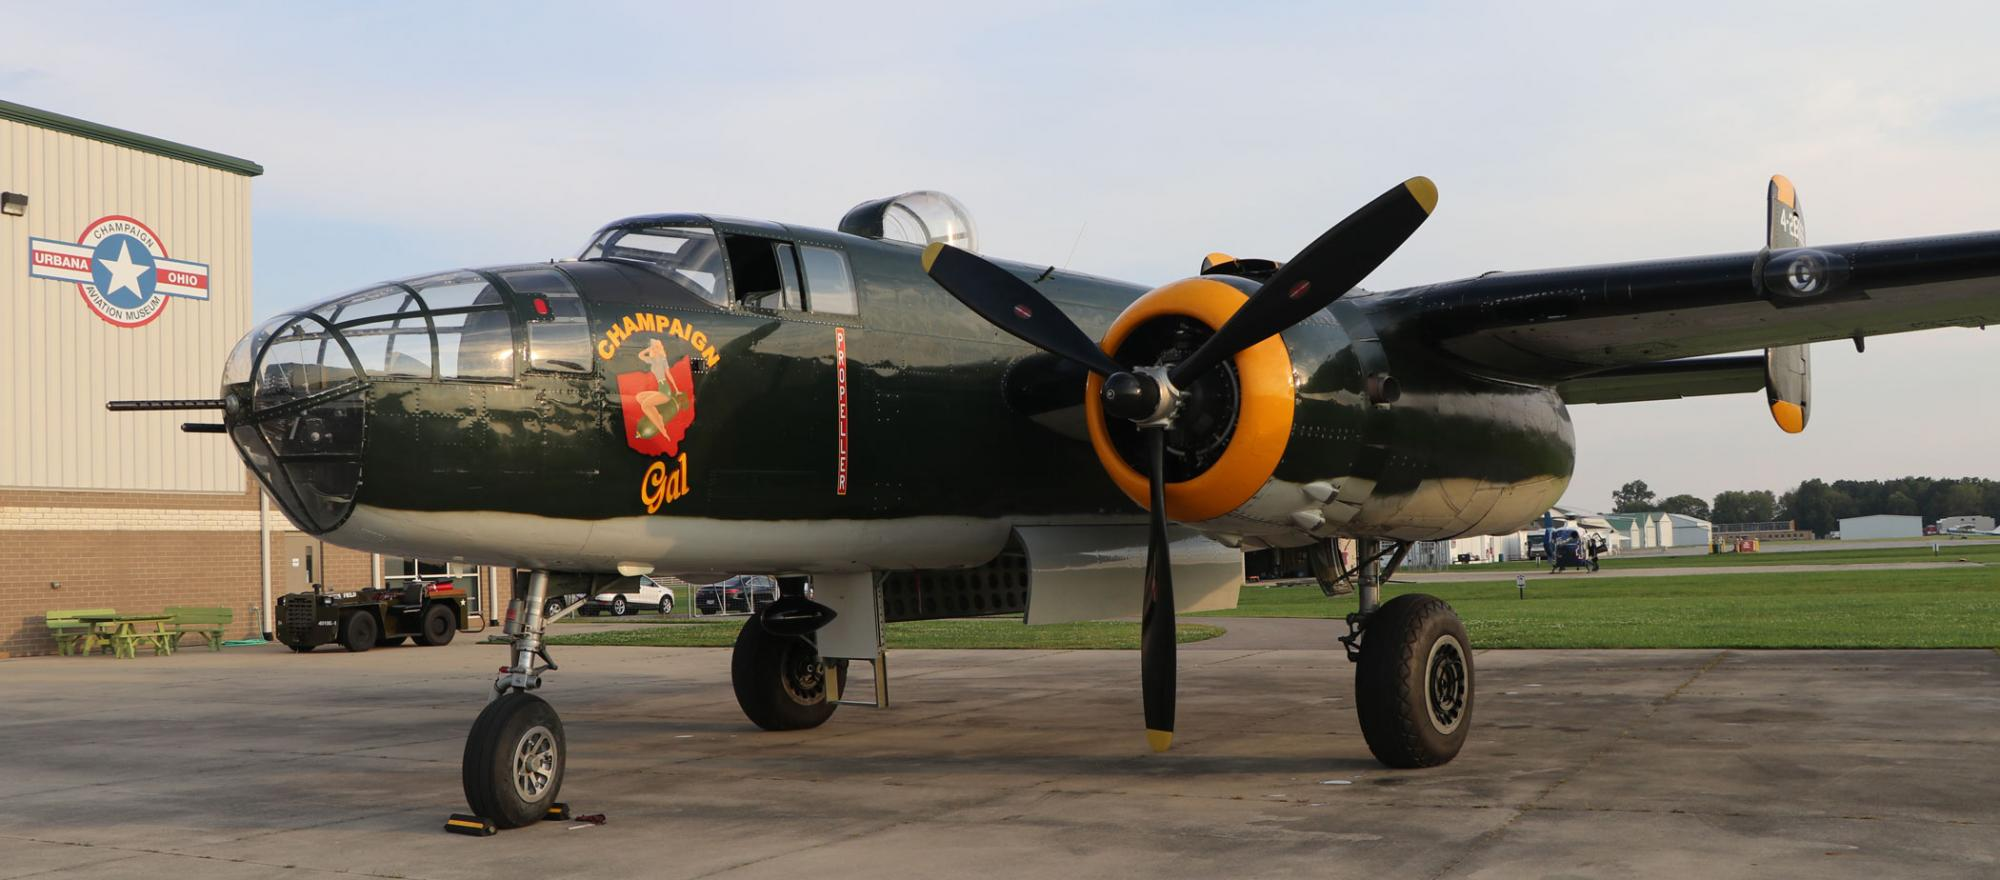 """""""In the B-25, you feel the history, It's like flying for the first time,"""" says Dave Shiffer, a pilot for the Champaign Aviation Museum in Urbana, Ohio."""